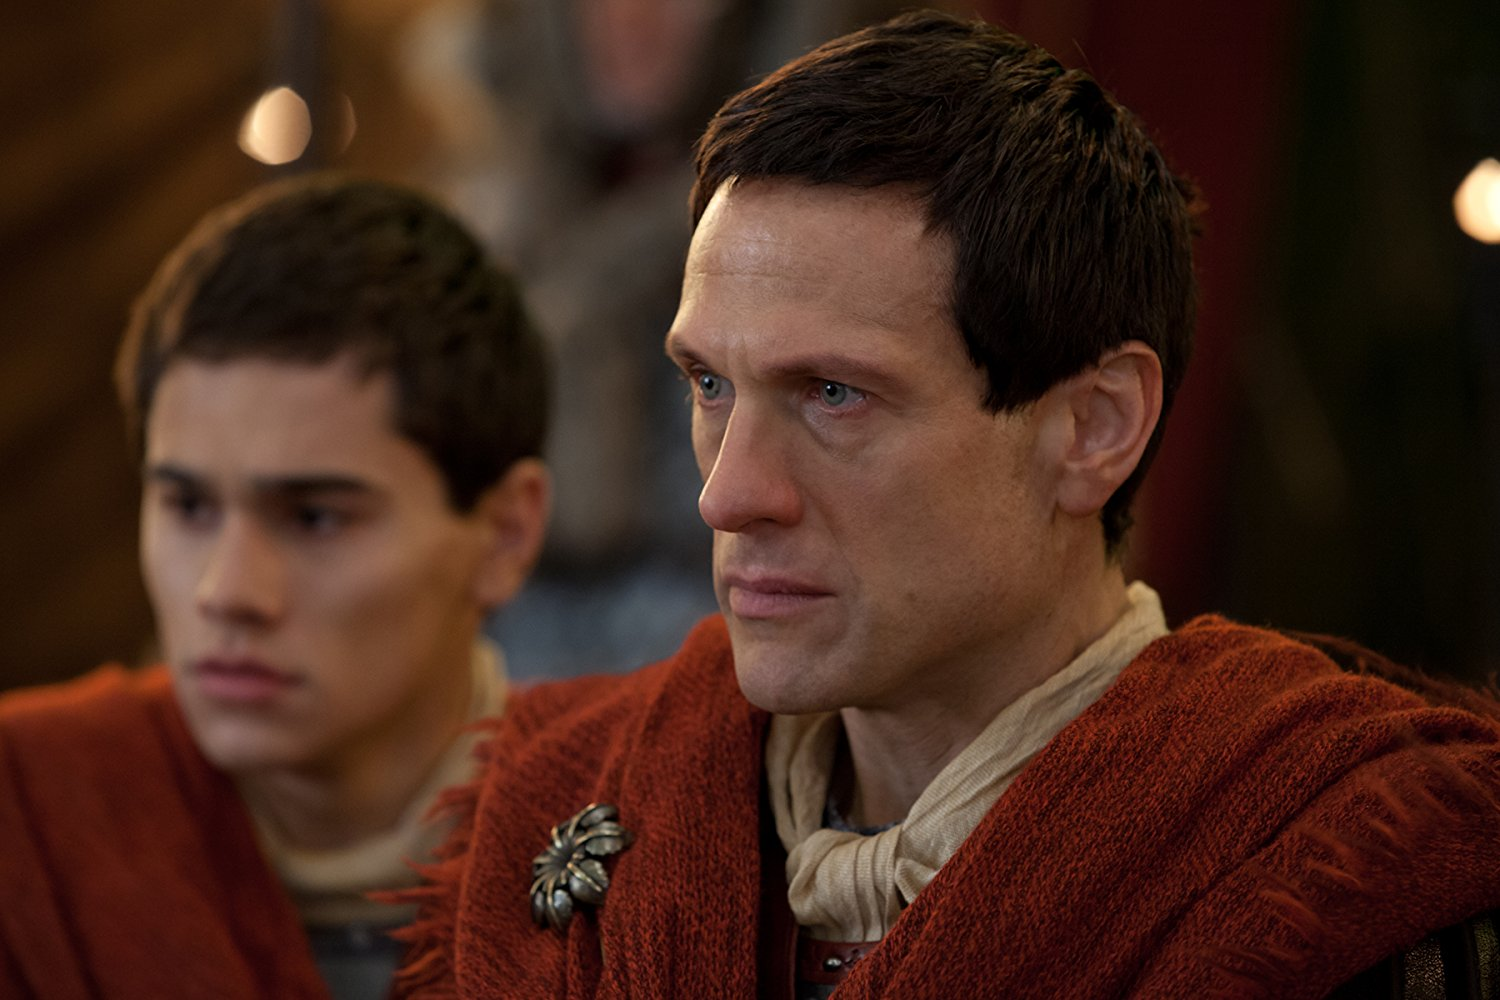 Watch Movies and TV Shows with character Tiberius Crassus ...